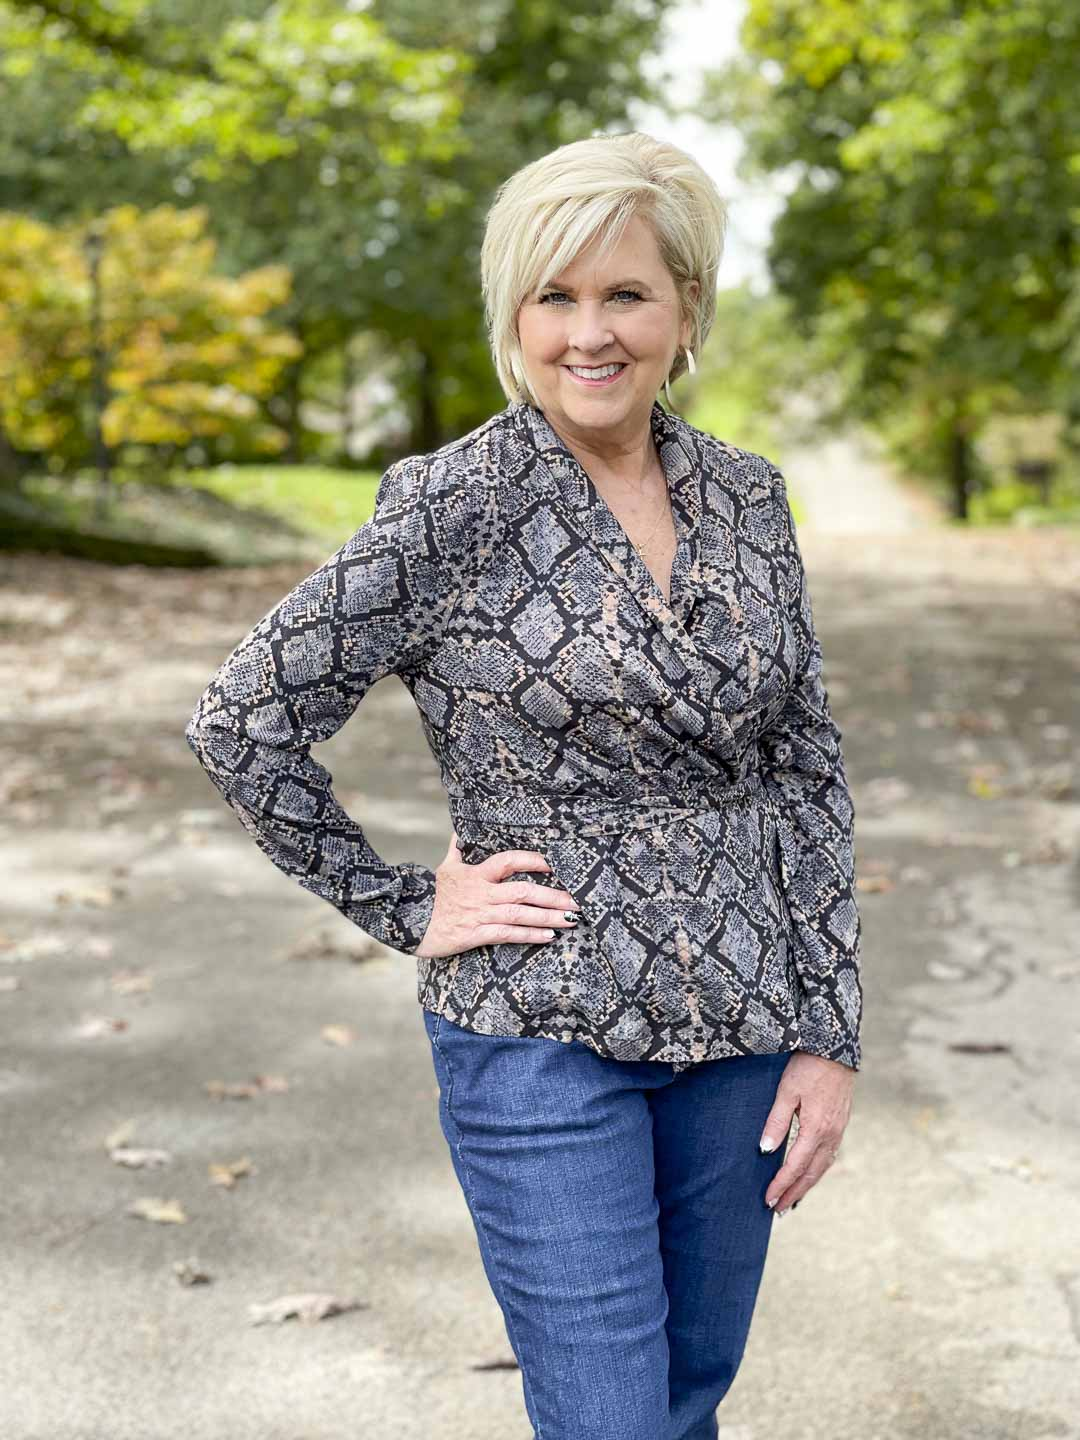 Over 40 Fashion Blogger, Tania Stephens, is showing her recent Walmart haul including this snake print wrap top